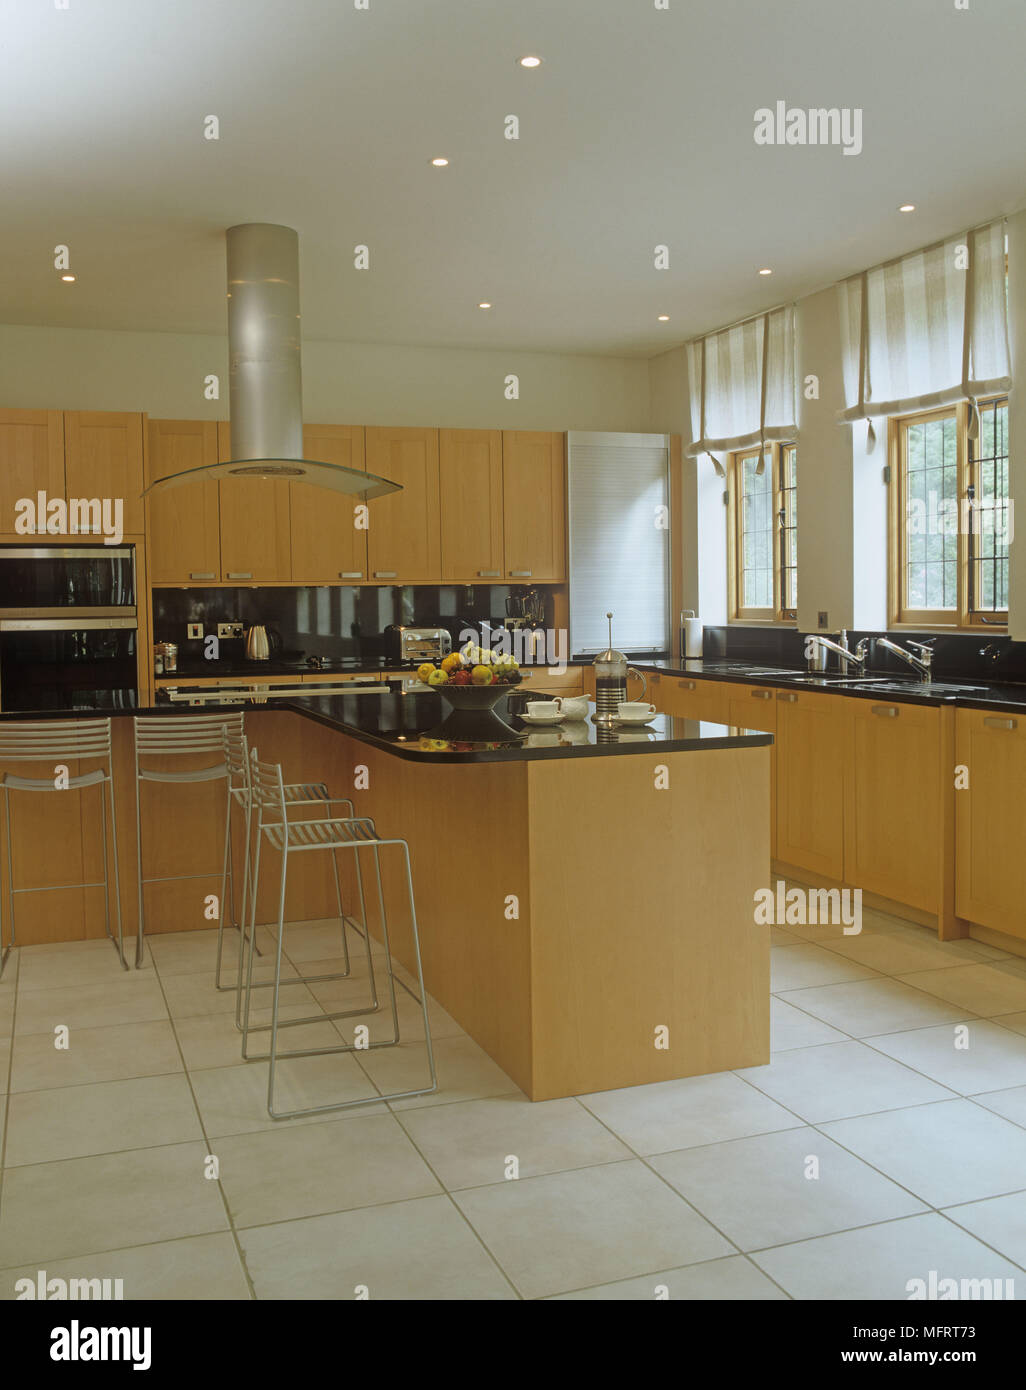 Kitchen island and stools in open plan area with worktop and integral appliances. & Kitchen island and stools in open plan area with worktop and ...